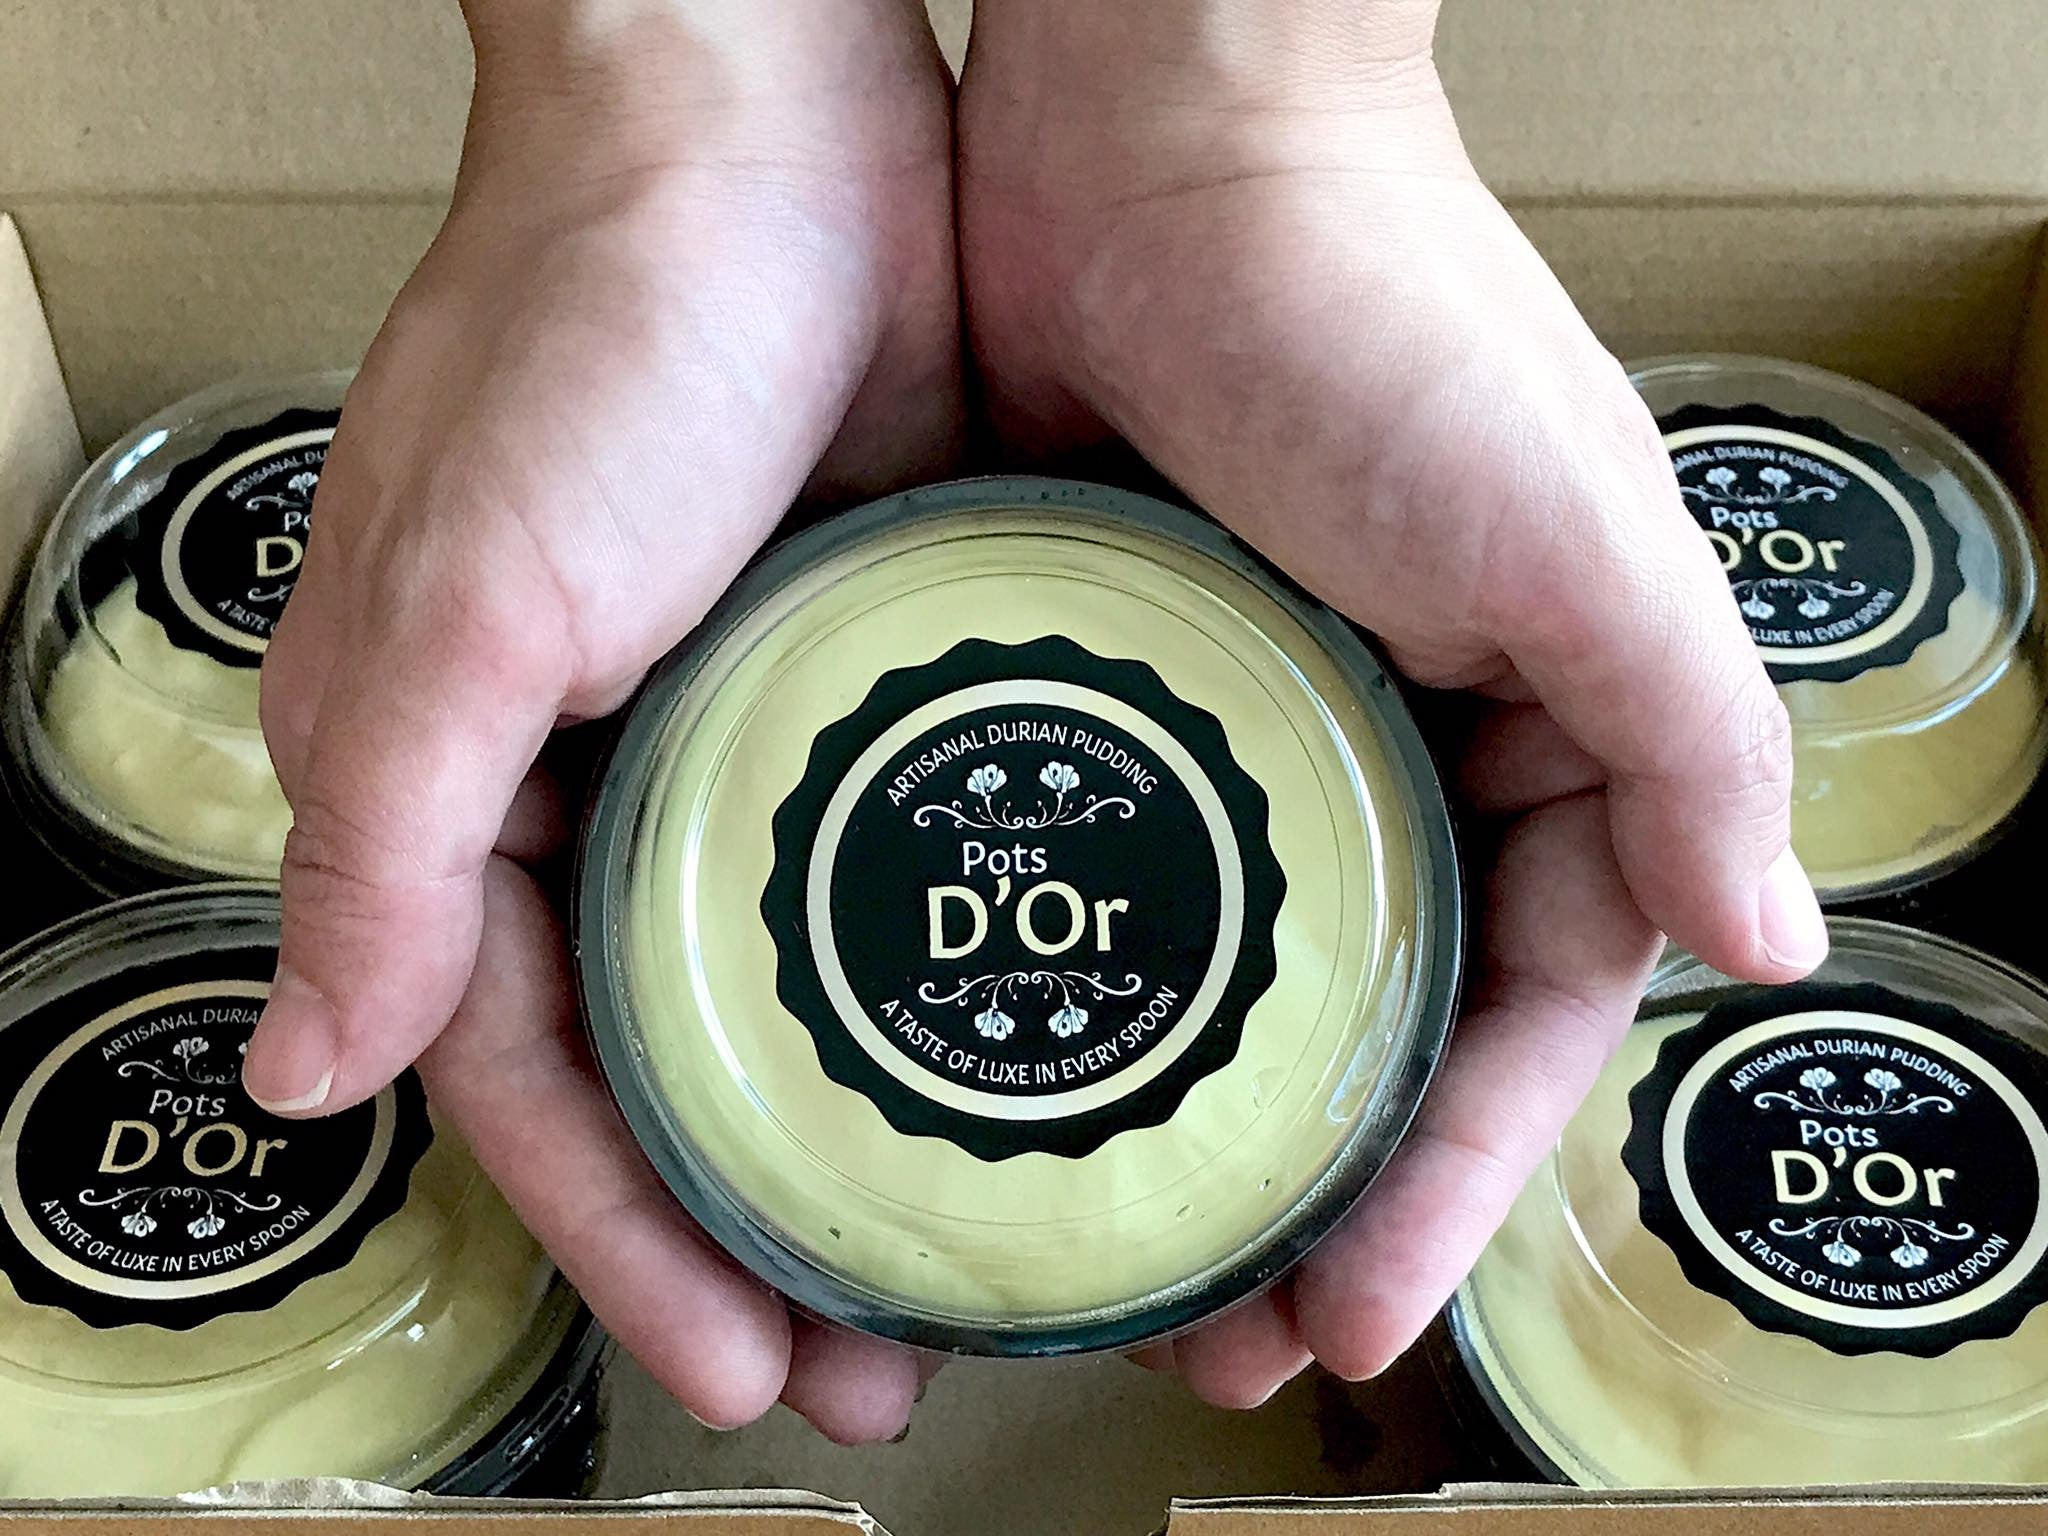 Pots D'Or Artisanal Durian Pudding (Double Shot) | Who can resist these delectable Double Shot Durian Pudding pots which are topped with a generous dollop of 100% pure creamy durian.